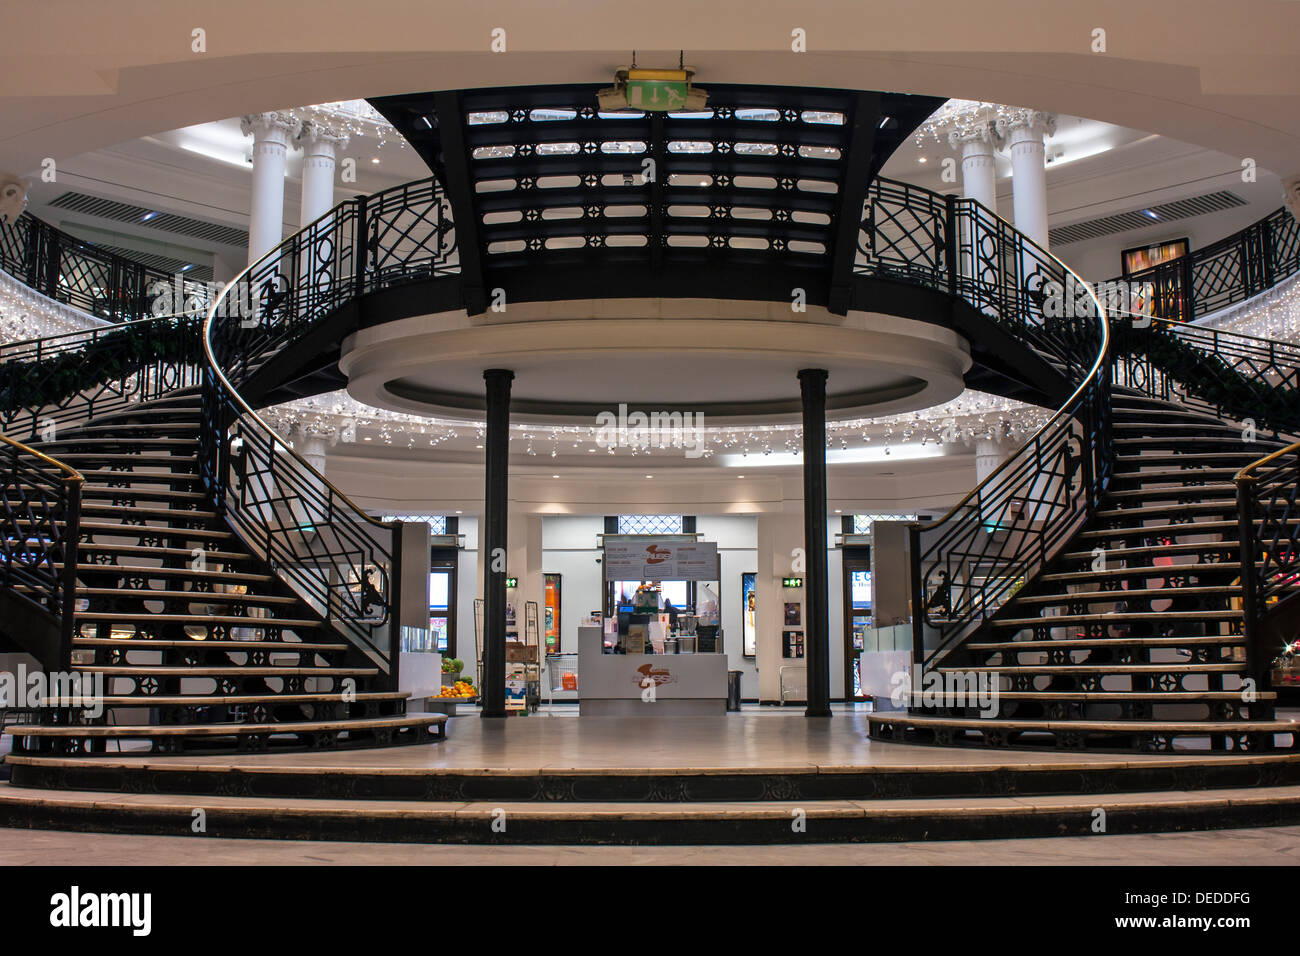 London Whiteleys Centre Stock Photo Royalty Free Image